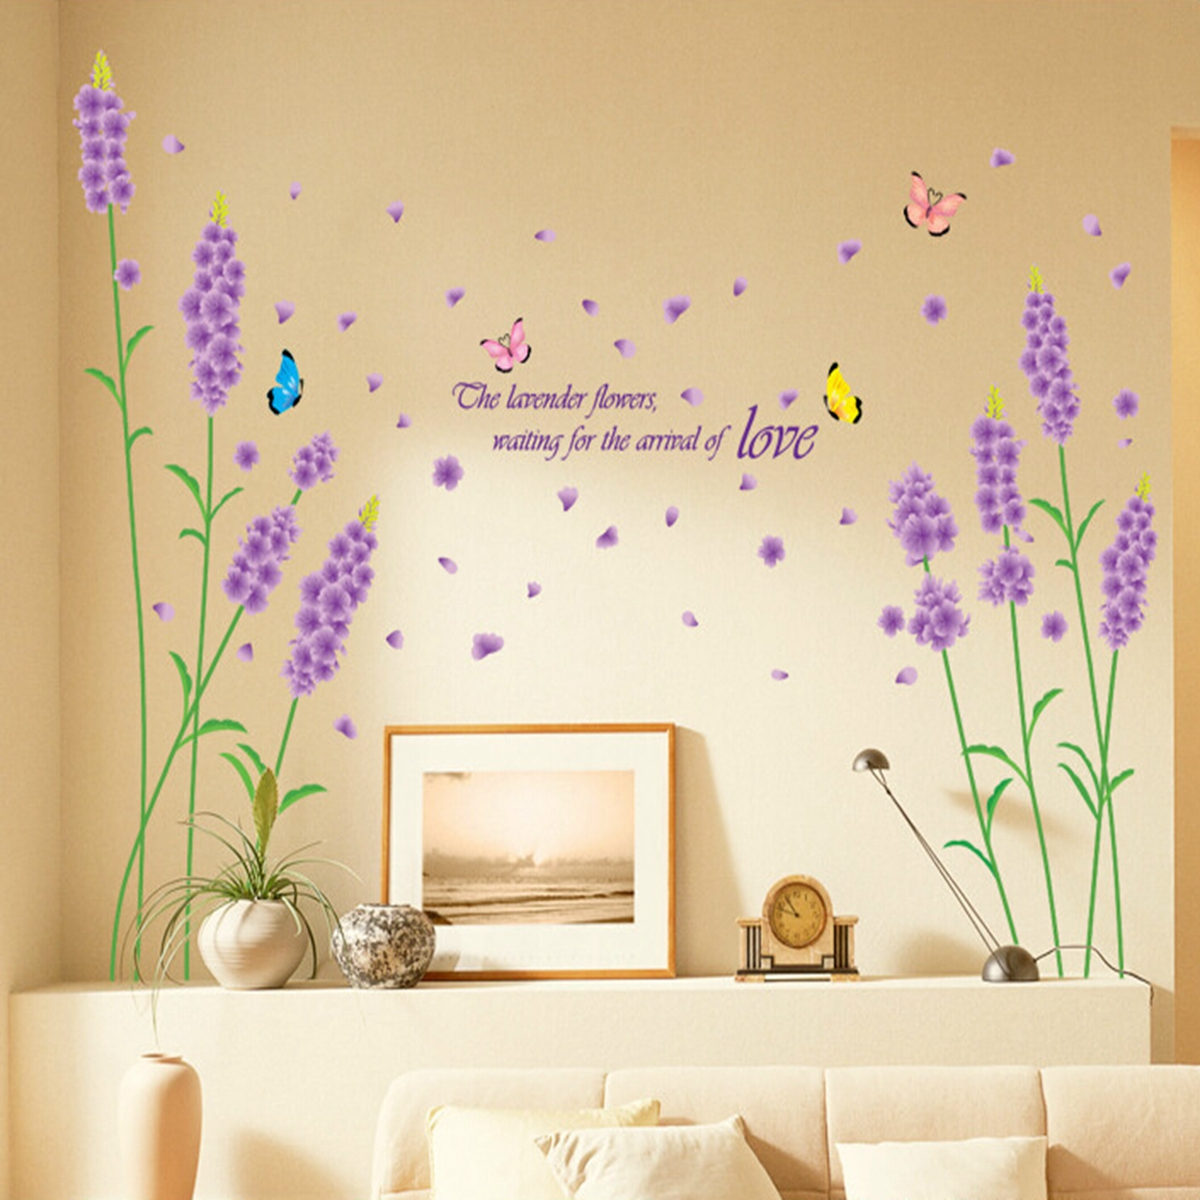 sticker mural sakura fleur autocollant romantique d coration salon chambre ebay. Black Bedroom Furniture Sets. Home Design Ideas